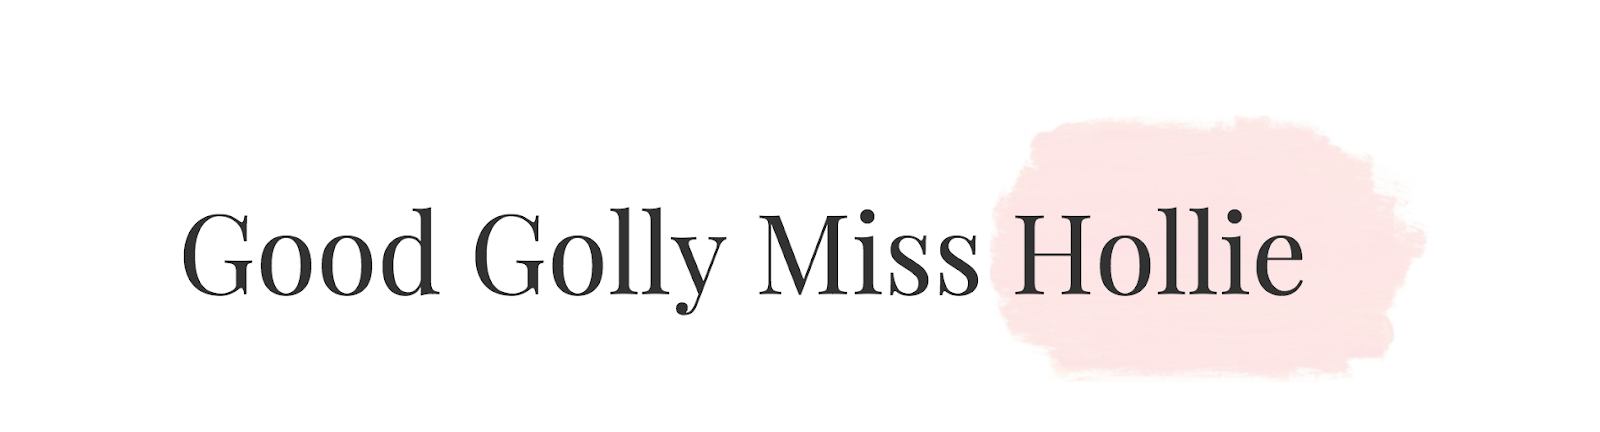 Good Golly Miss Hollie | UK Beauty, Fashion + Lifestyle Blog